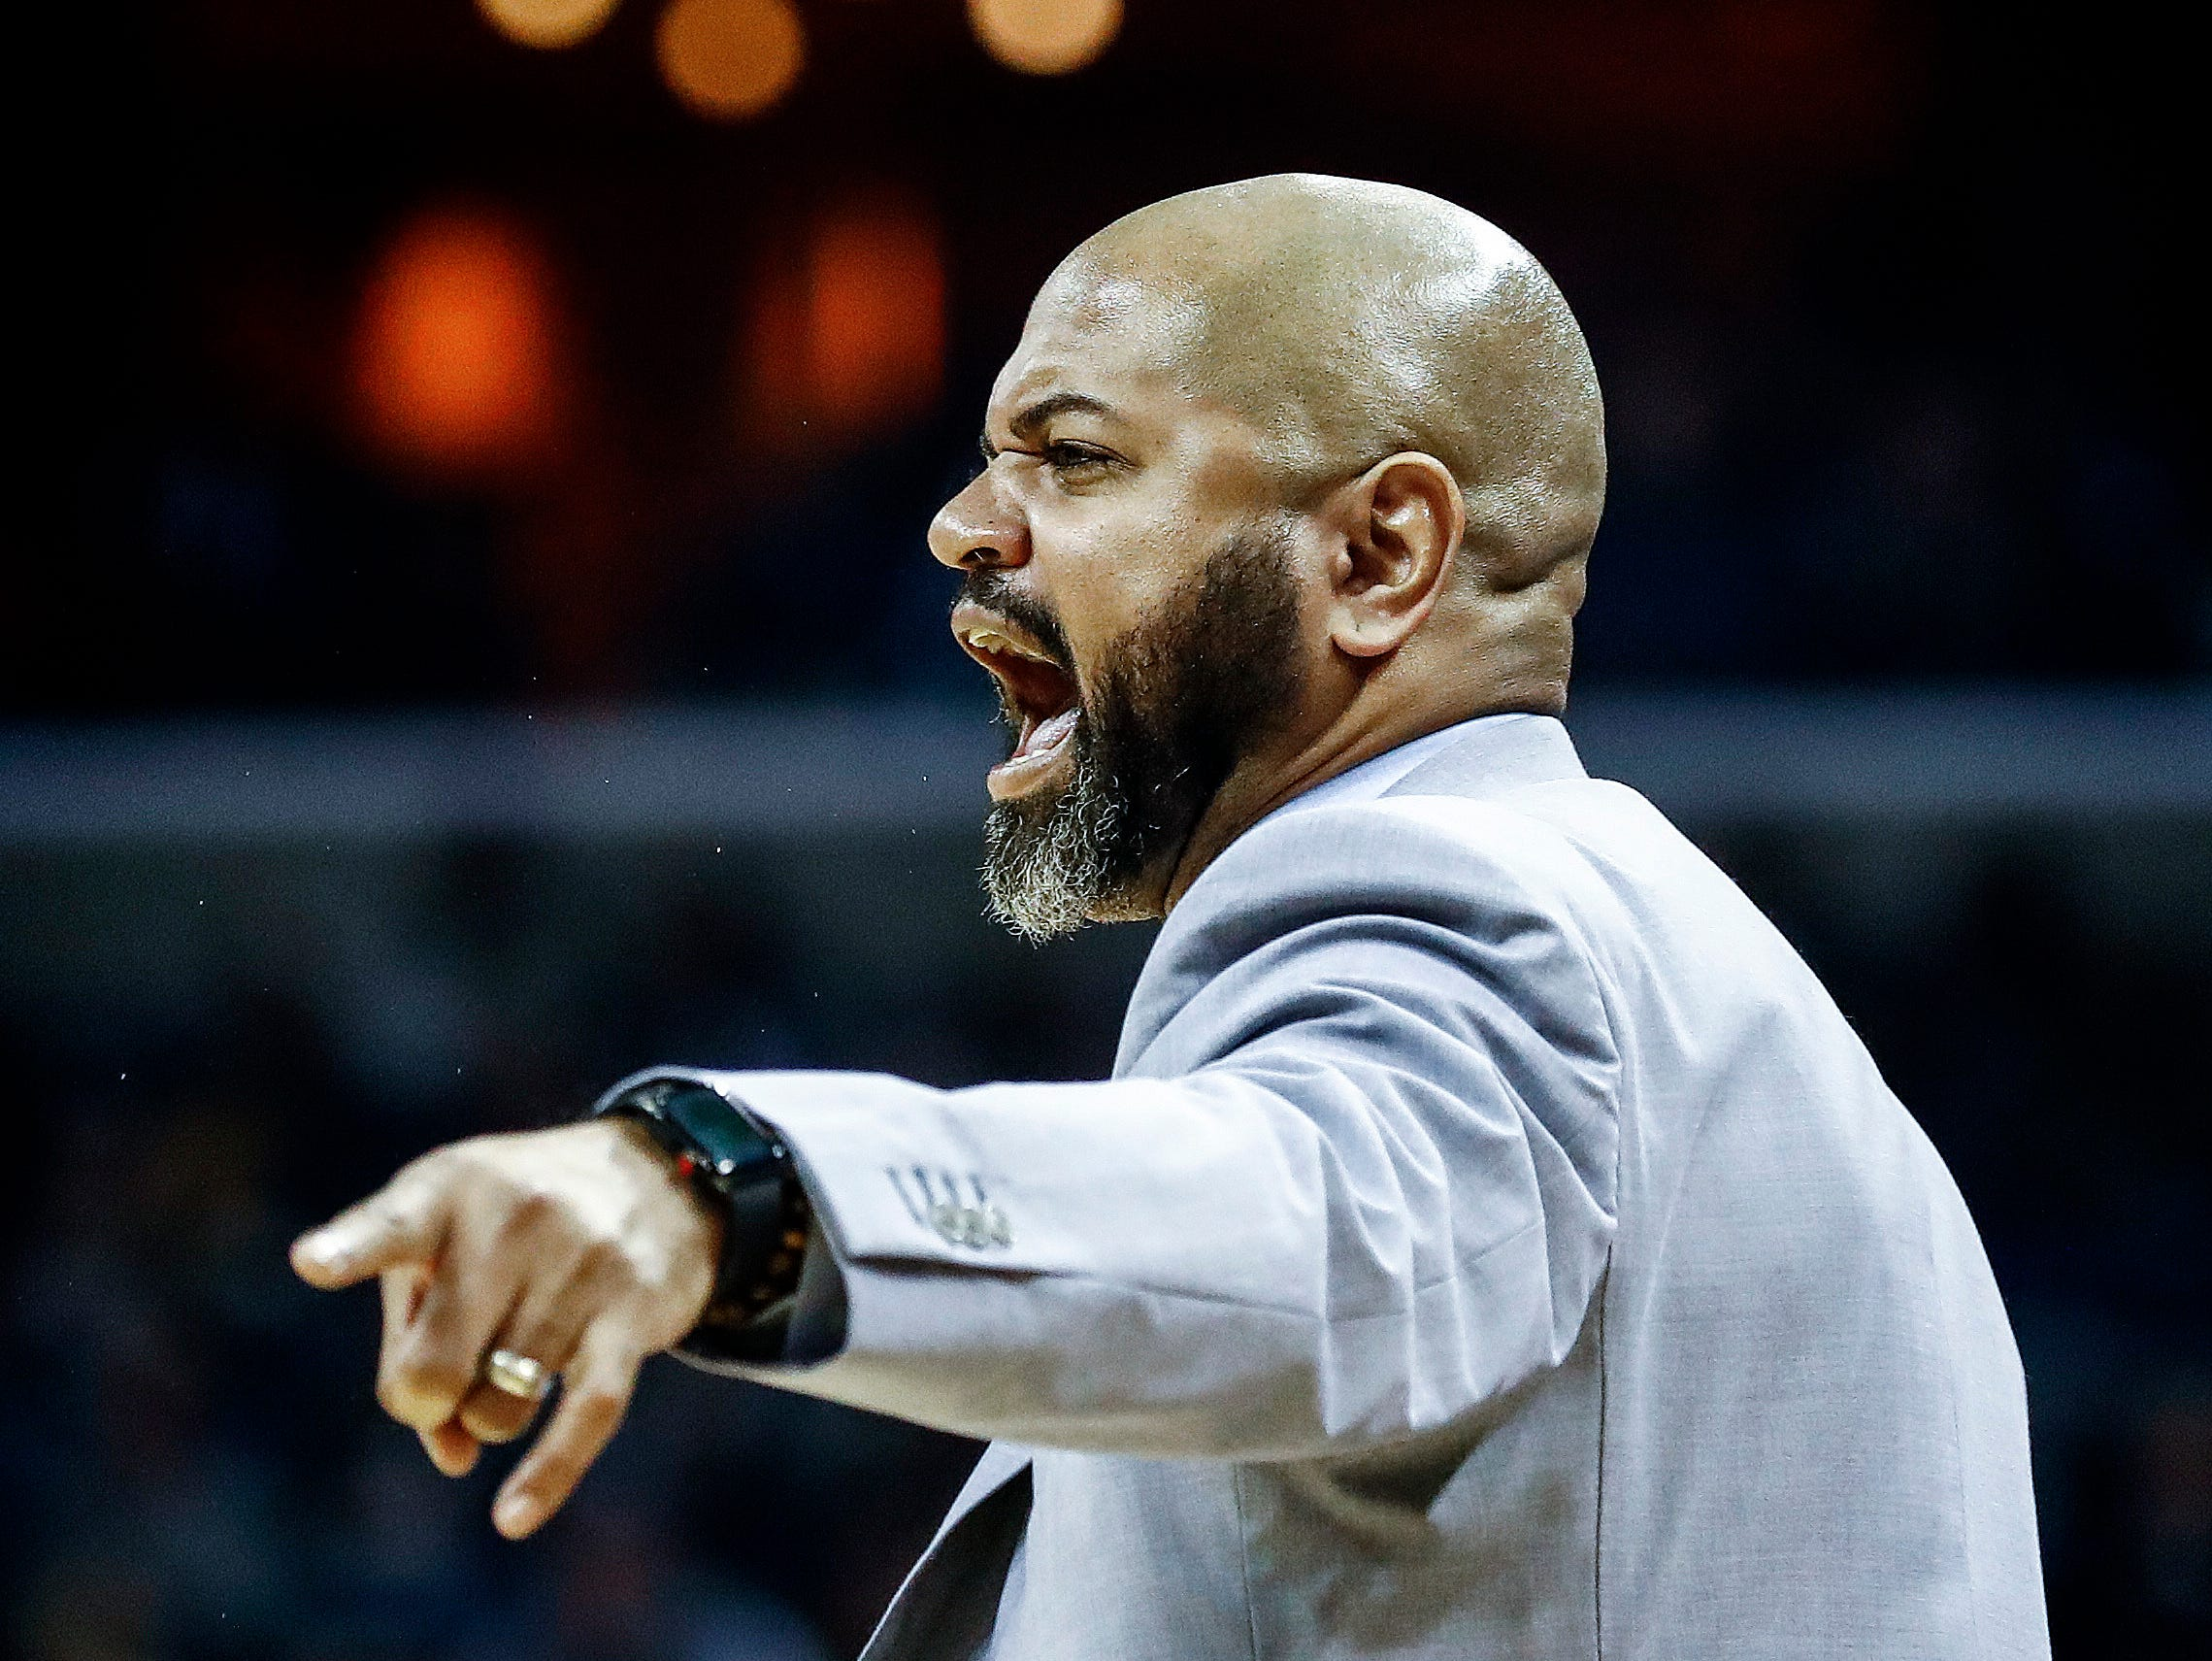 Memphis Grizzlies coach J.B. Bickerstaff during action against New Orleans Pelicans at the FedExForum in Memphis, Tenn., Monday, January 21, 2019.